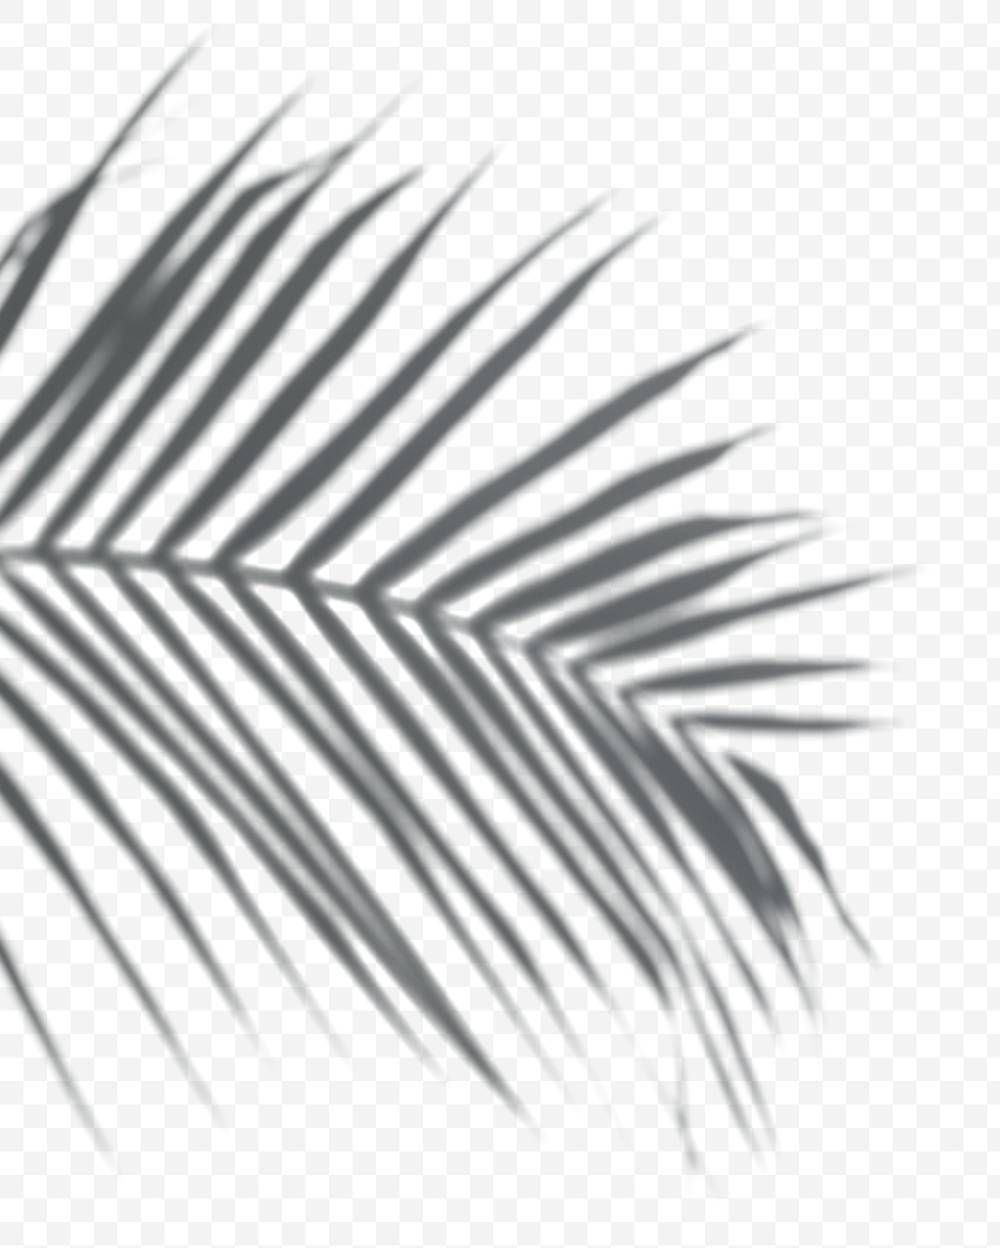 Download Free Png Of Shadow Of Palm Leaves Png On A Transparent Background About Shadow Palm Leaf Shadow Palm Shadow Leaf Background Transparent Background